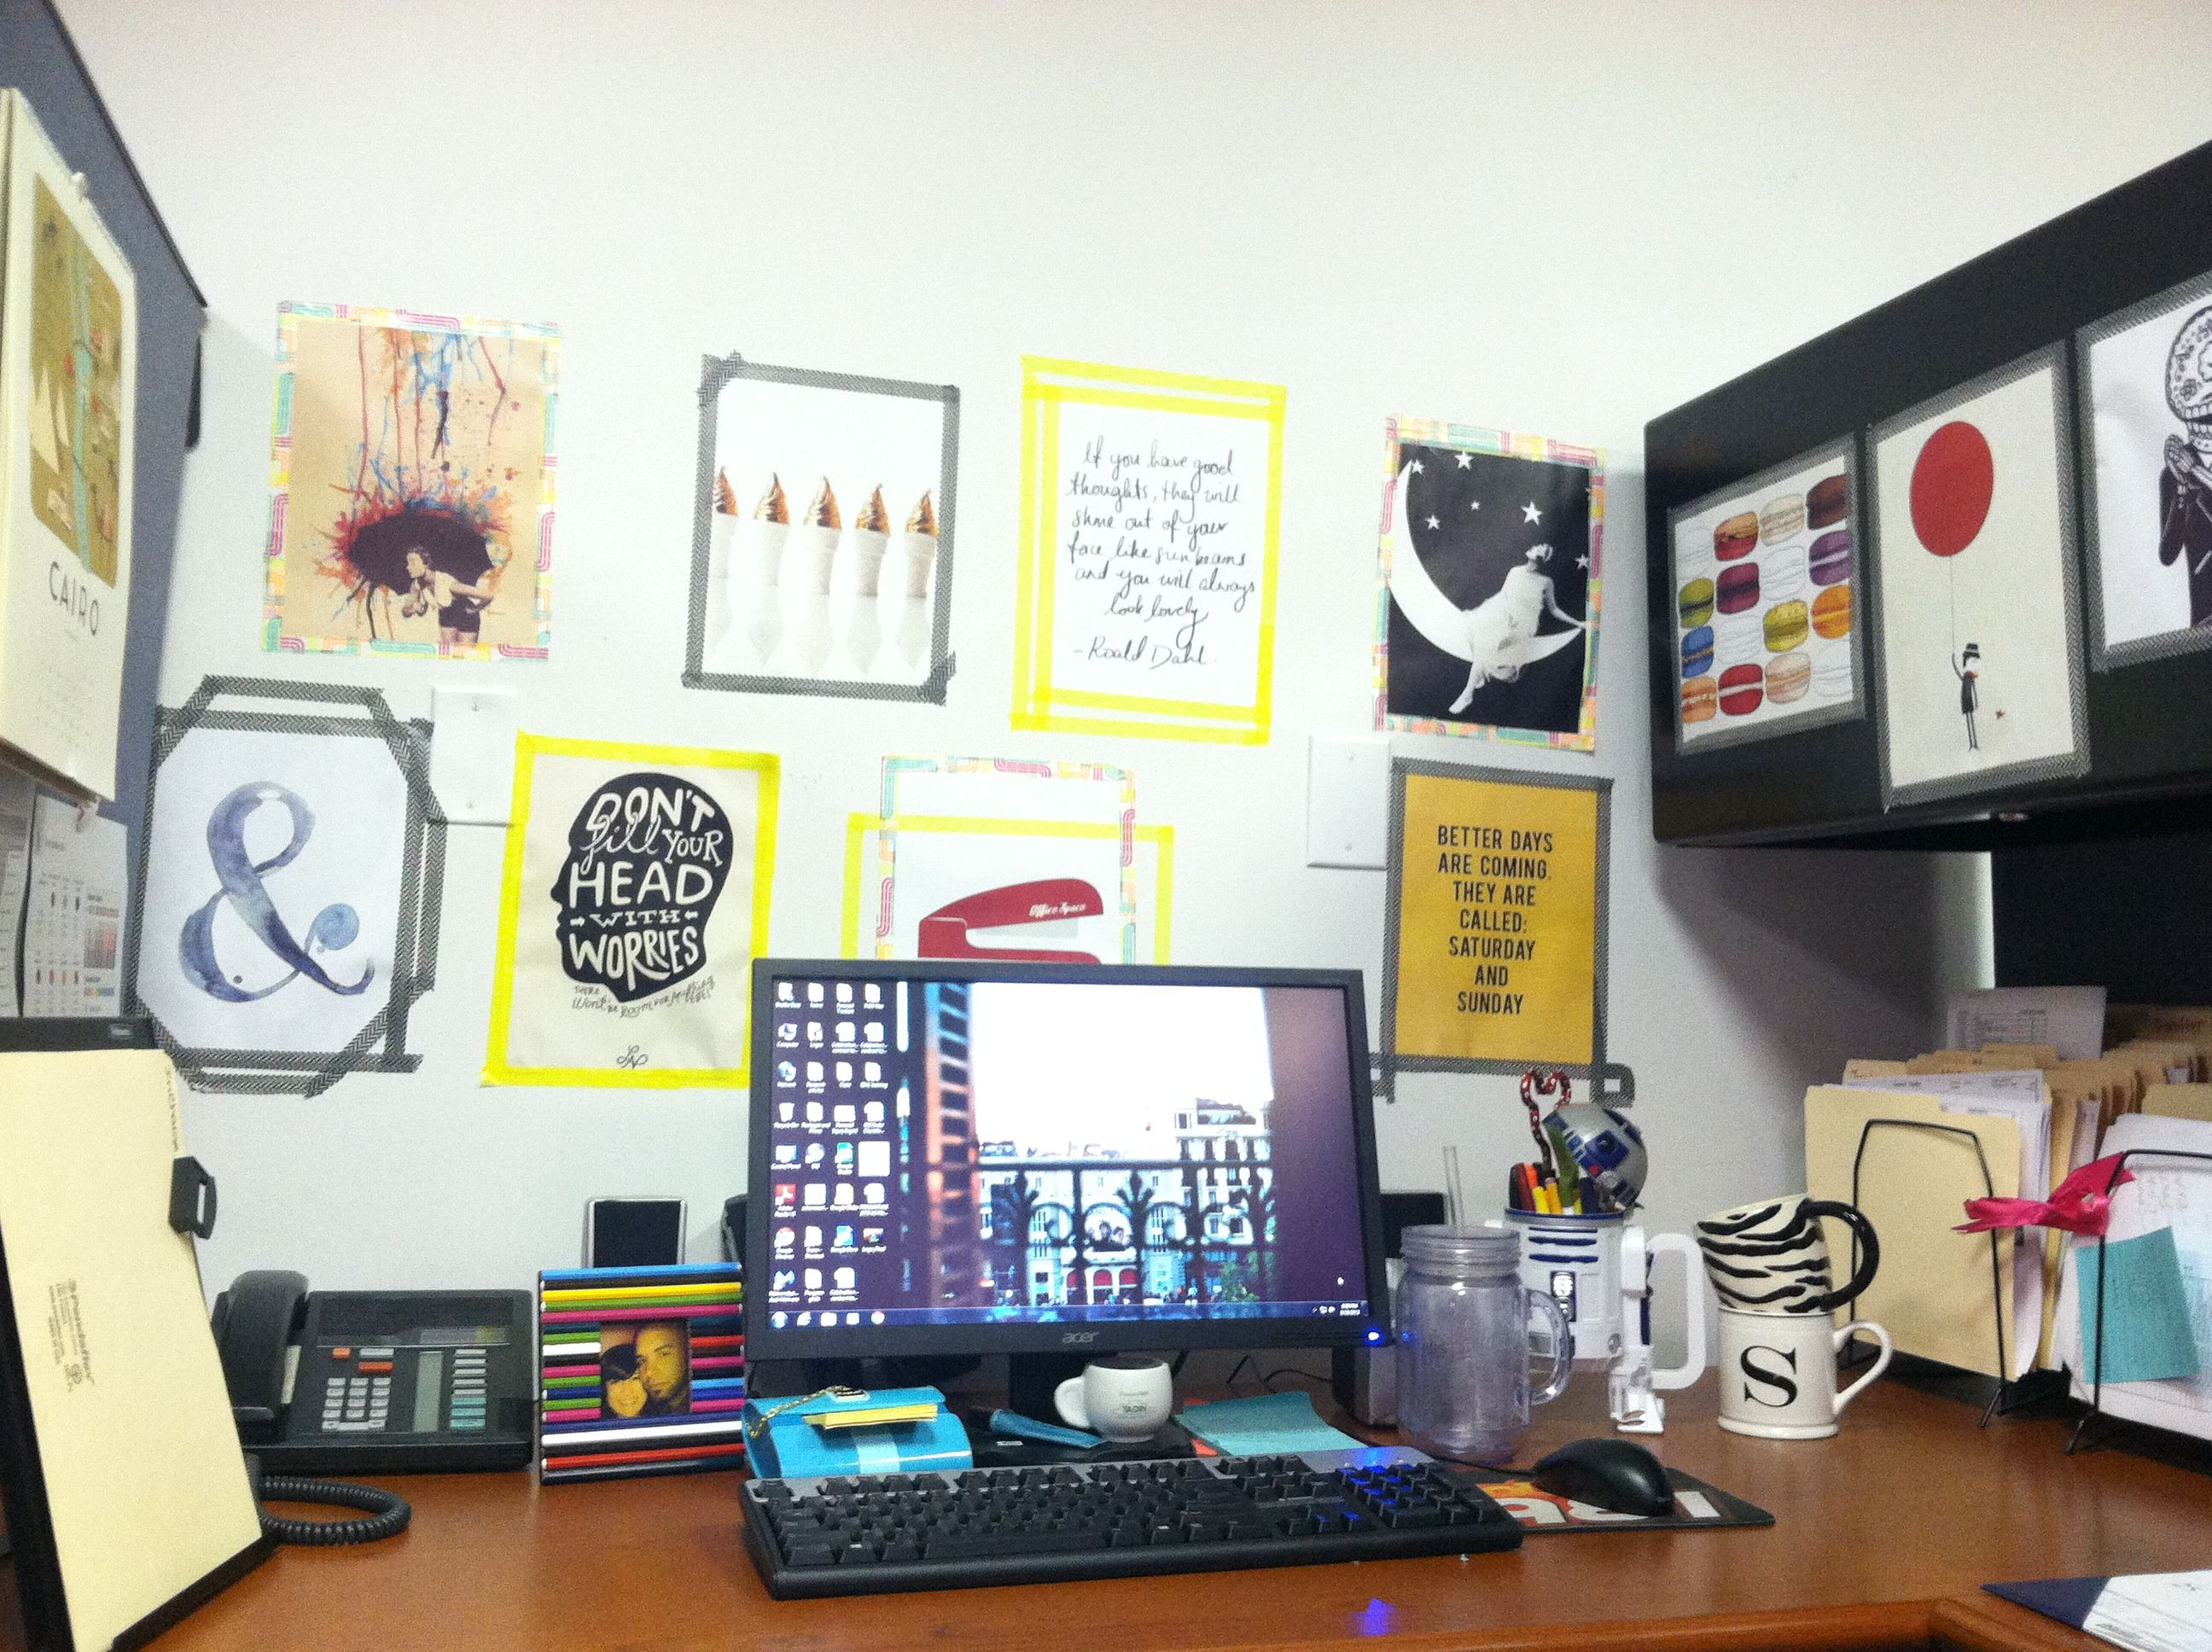 diy frames made using washi tape helps add personality to a cubicle or dorm